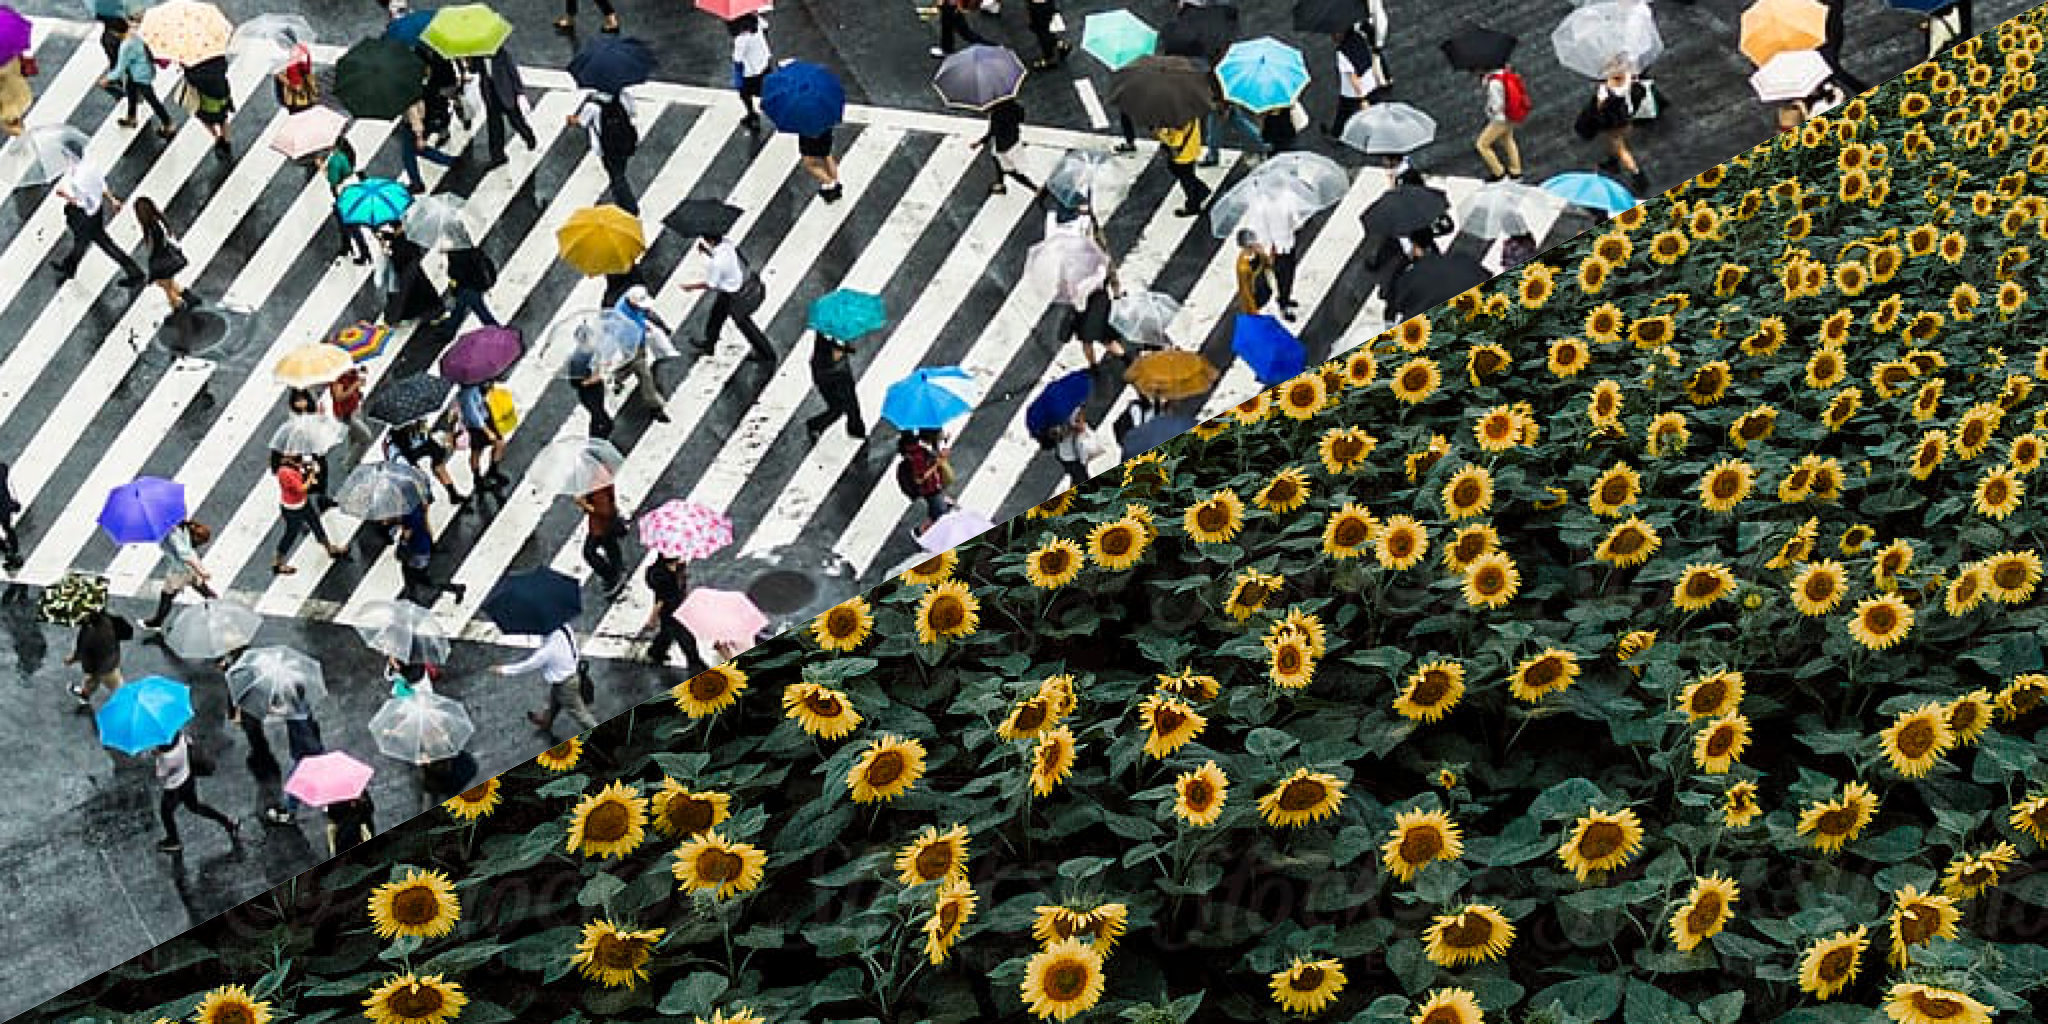 Split image of a sunflower field in contrast with a walkway full of people showing the environmental impact of consumers on the planet.